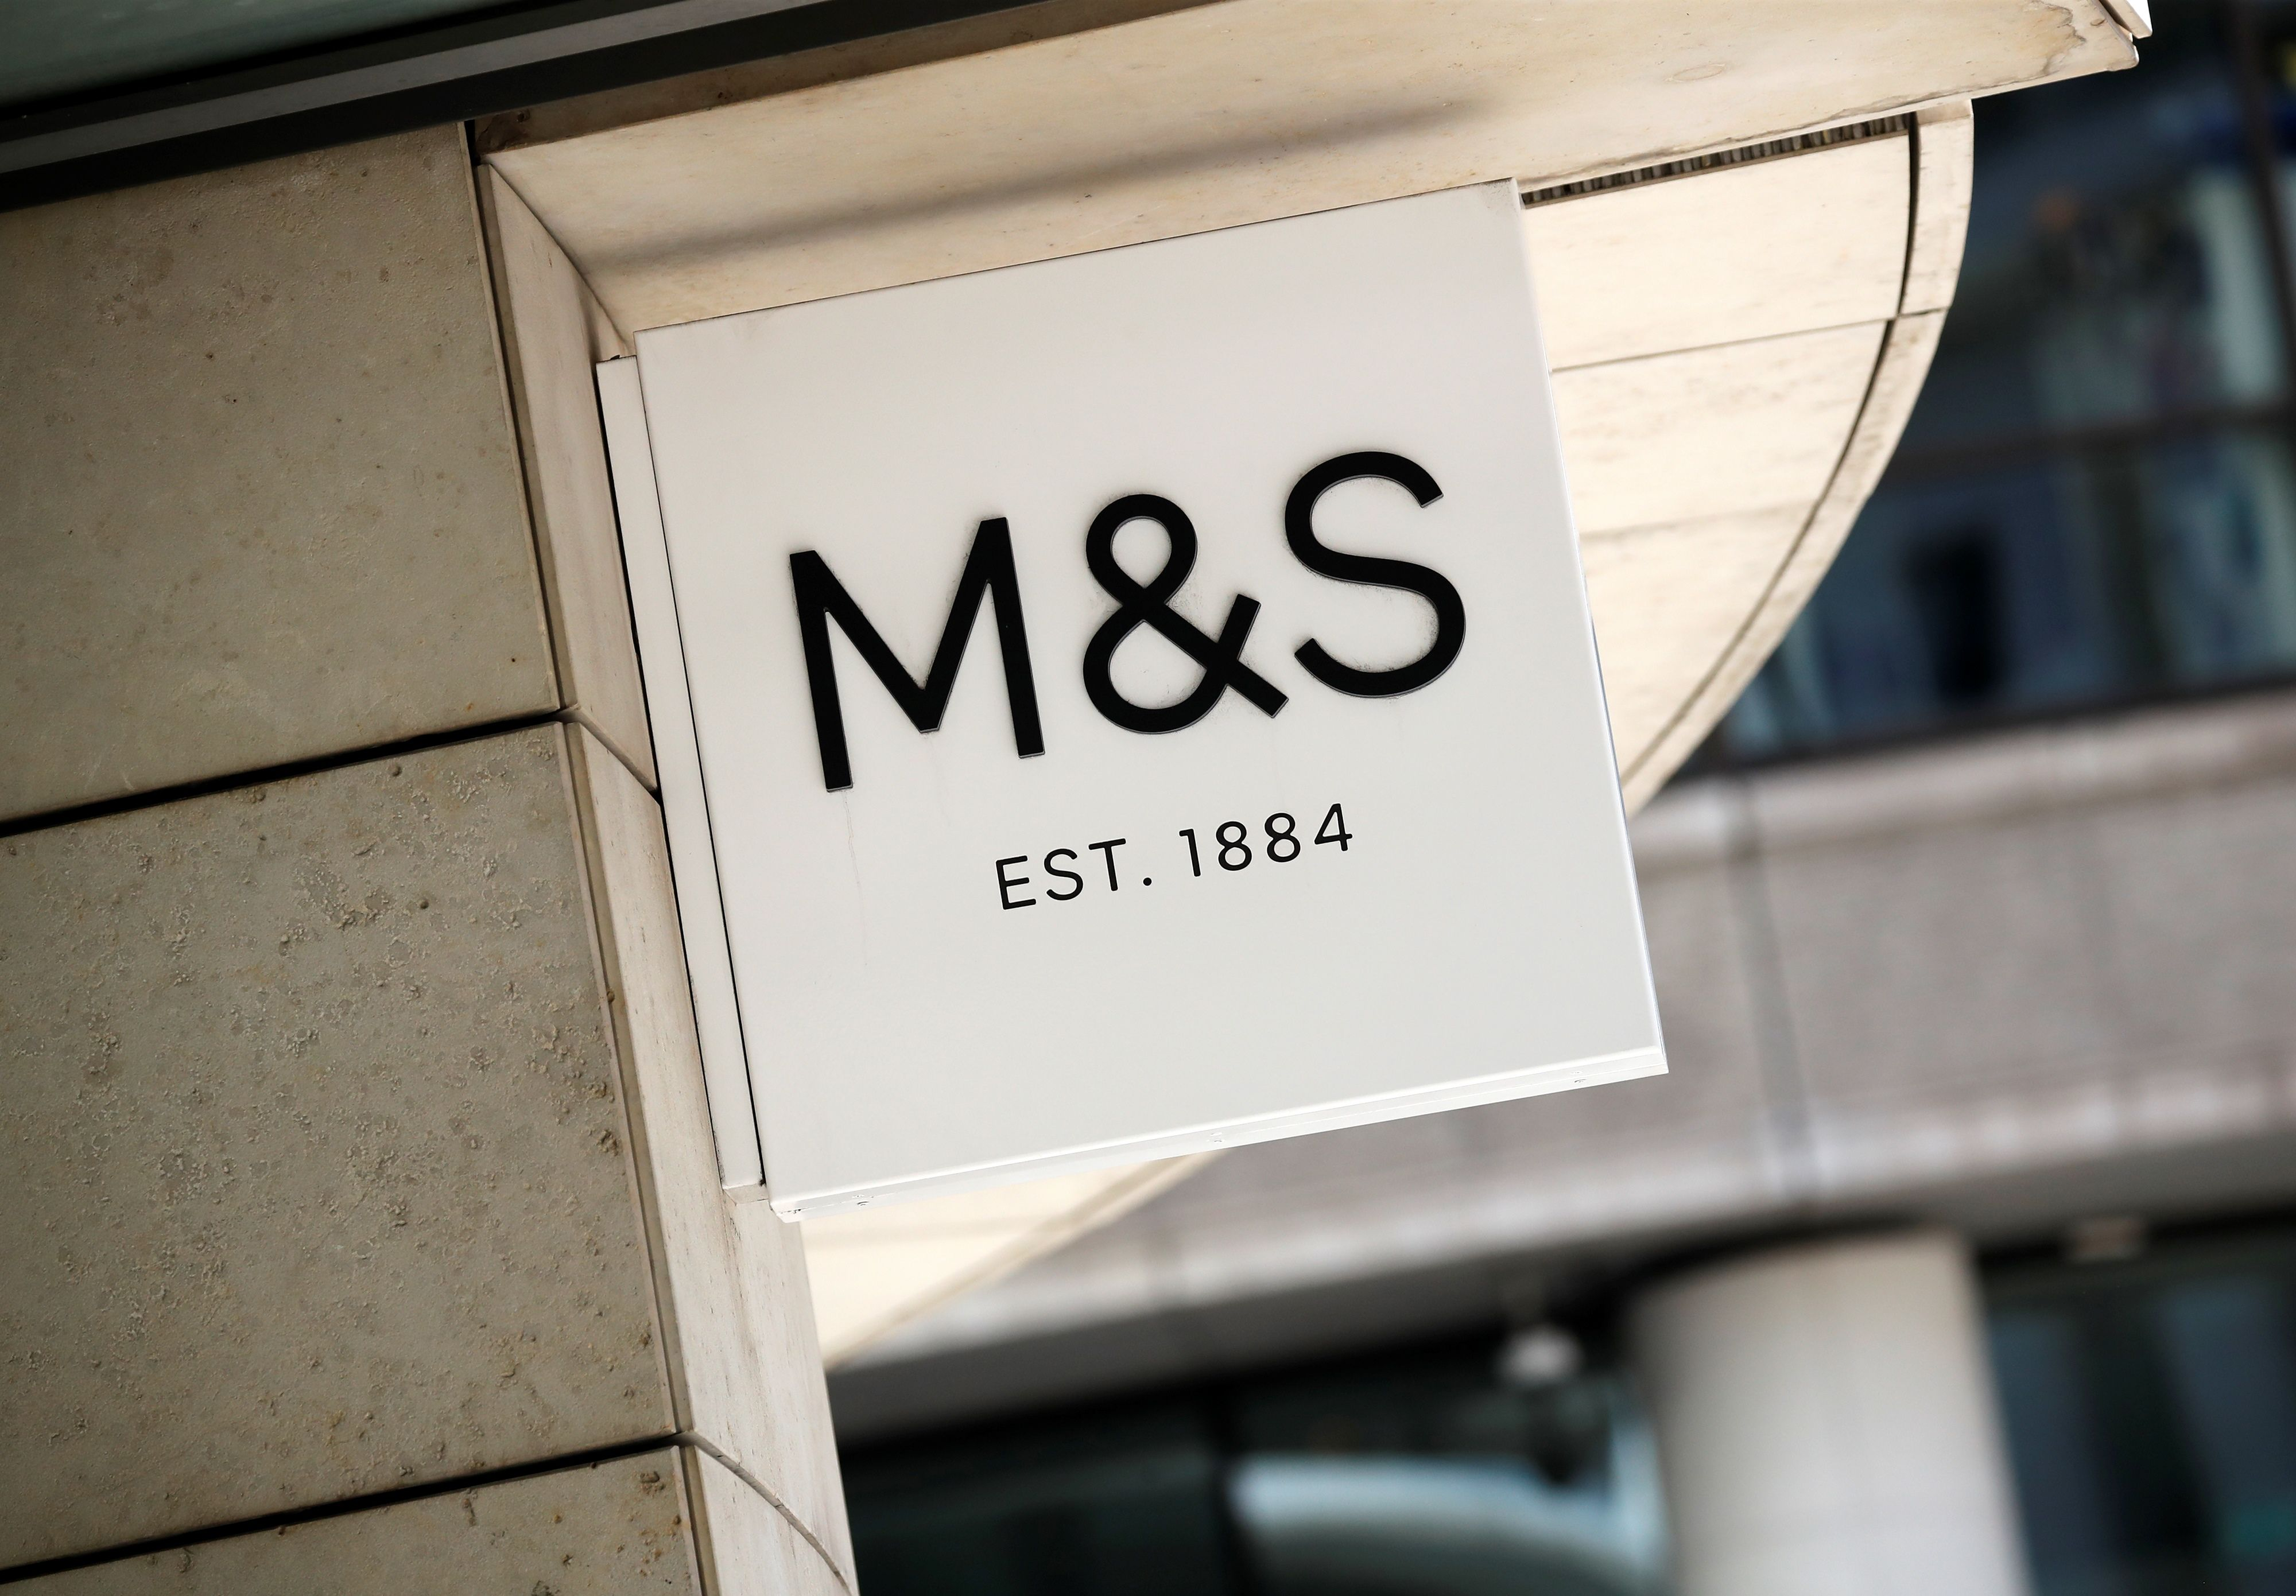 The high street staple is closing on Boxing Day